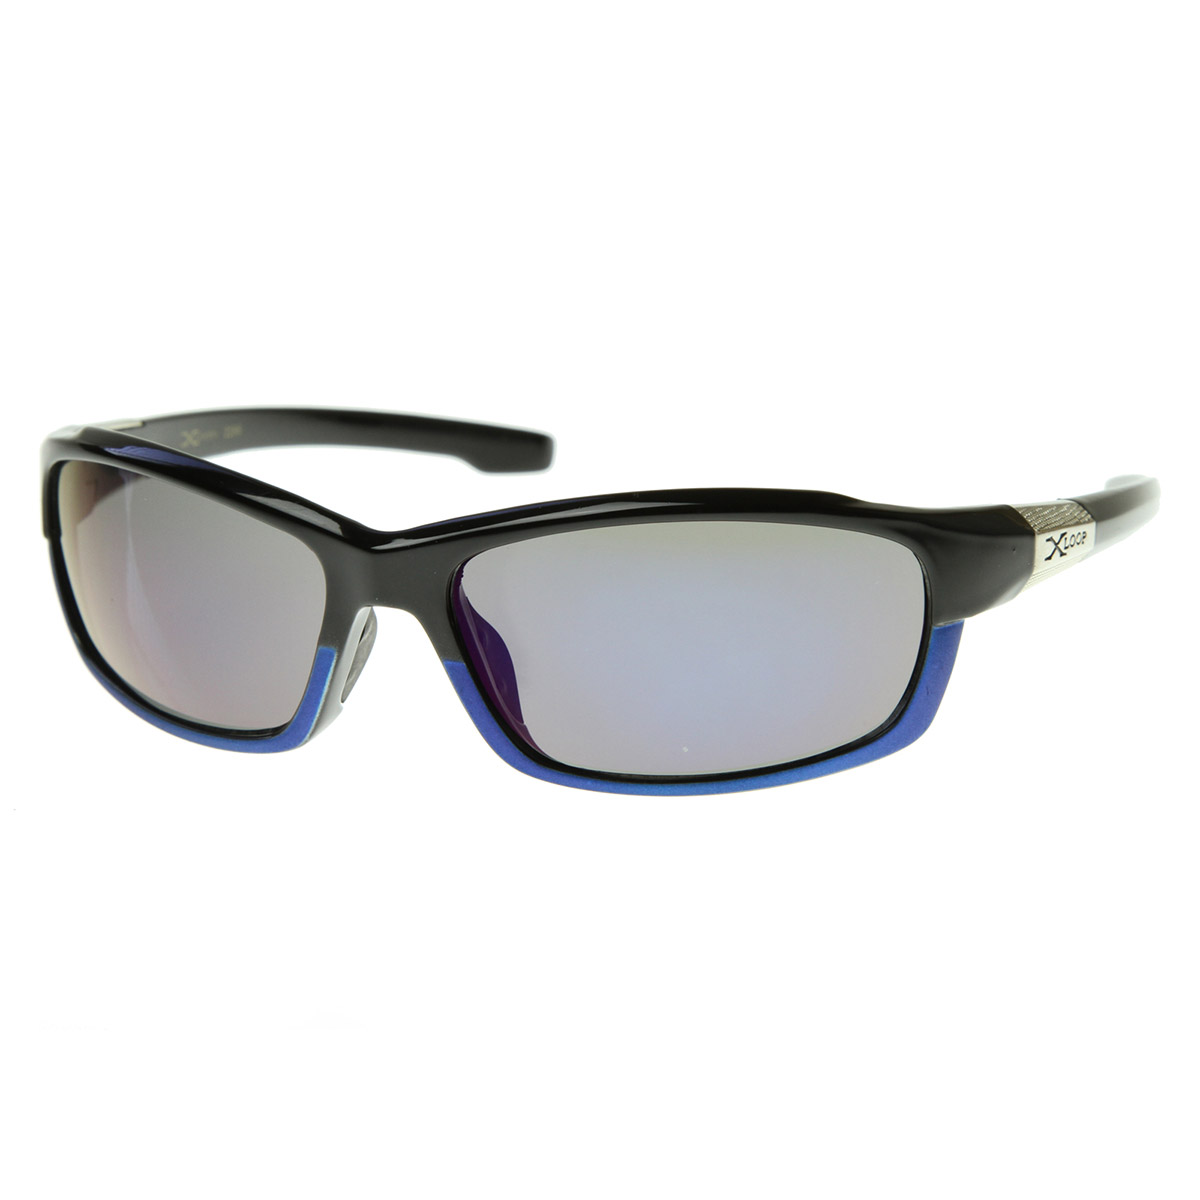 official x loop eyewear xloop sunglasses aggressive style